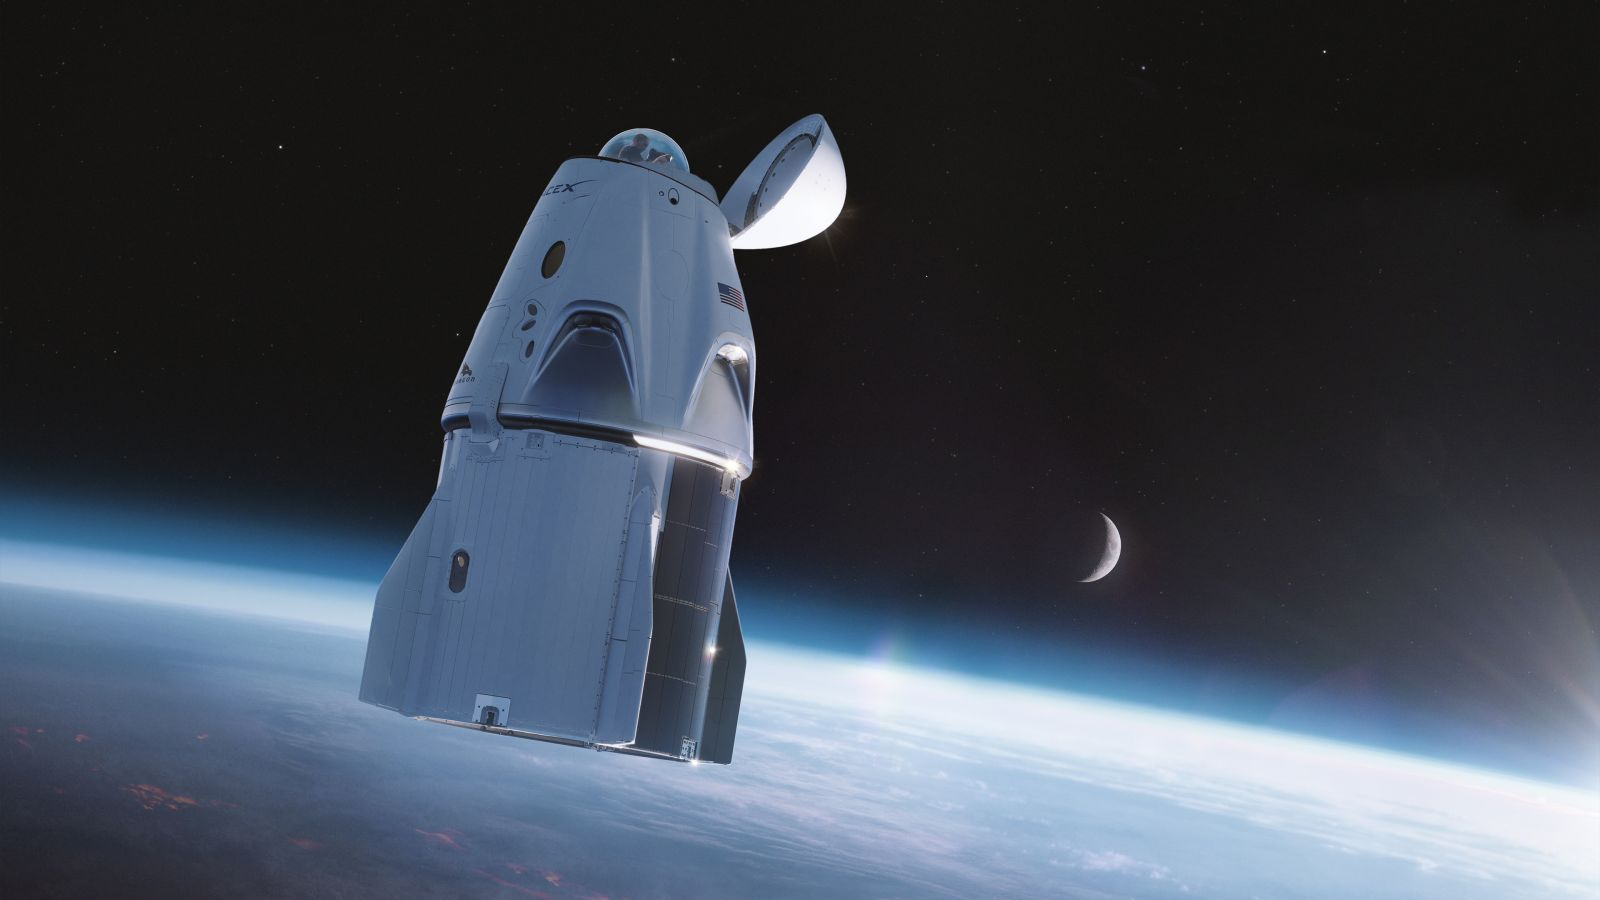 SpaceX is developing a special window to take the place of the docking port for Inspiration4. Credit: SpaceX